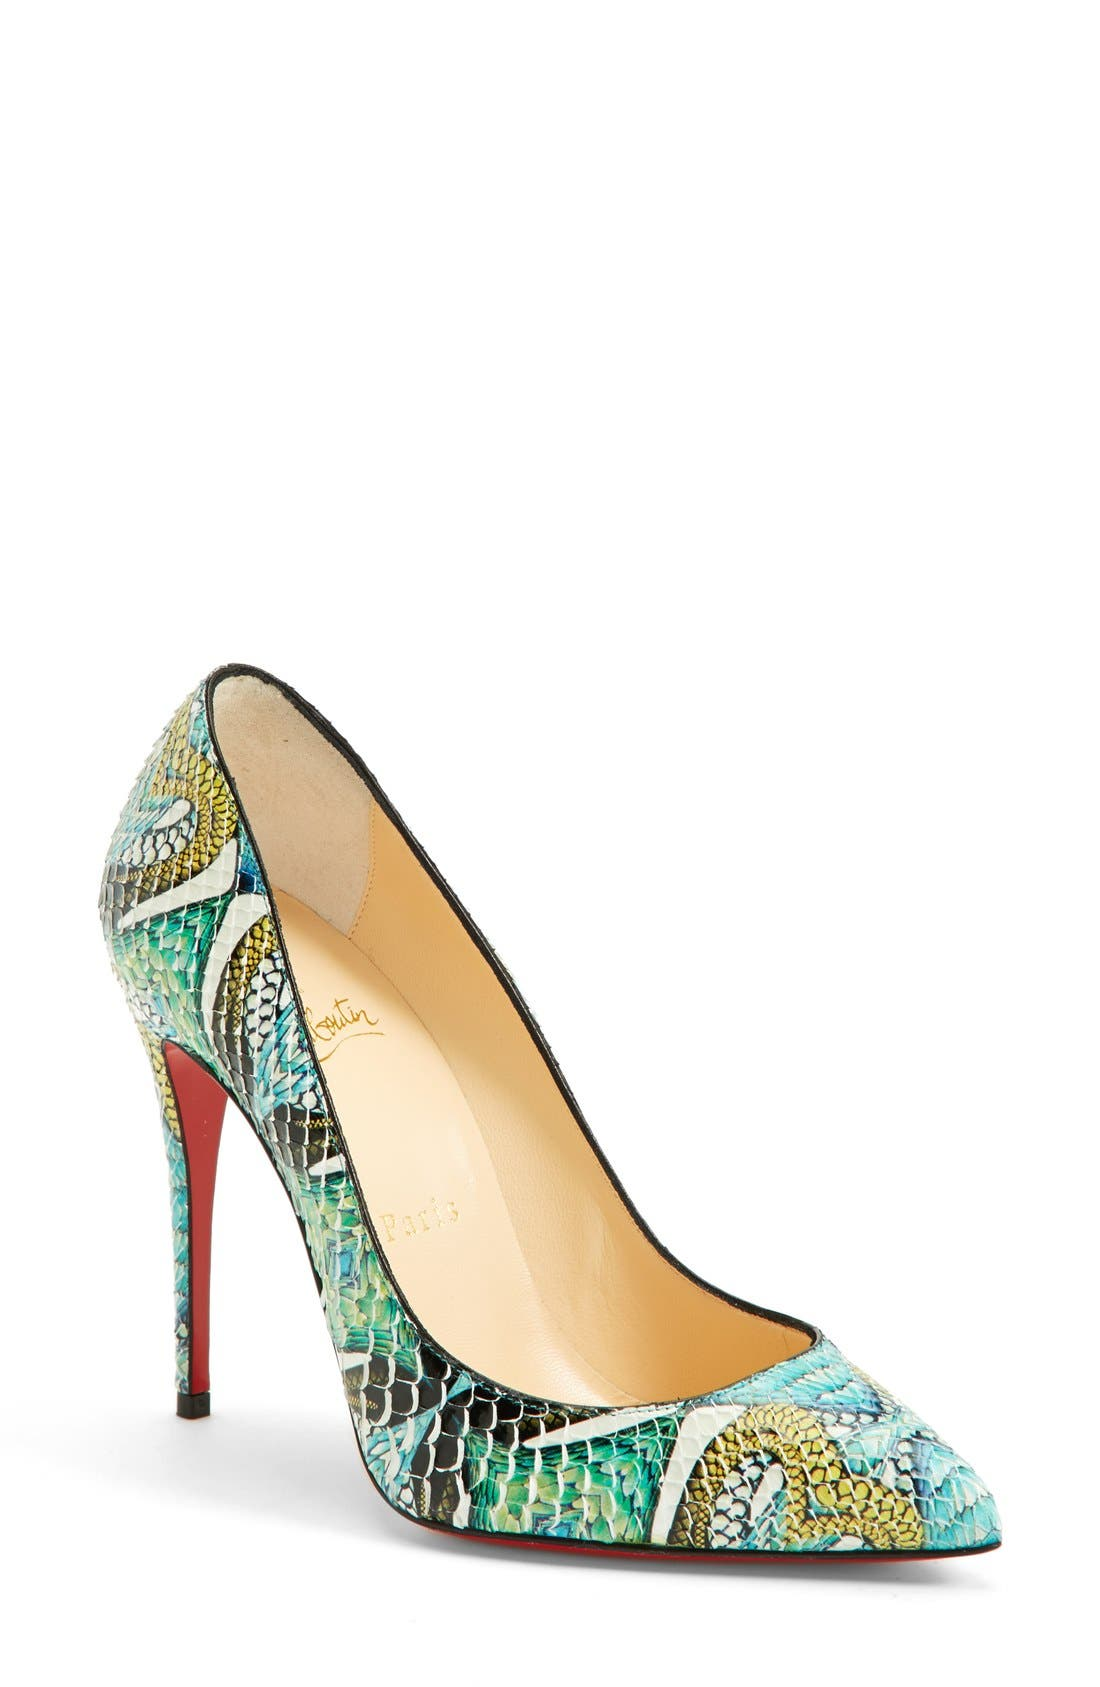 Main Image - Christian Louboutin 'Pigalle' Hand Painted Genuine Python Pointy Toe Pump